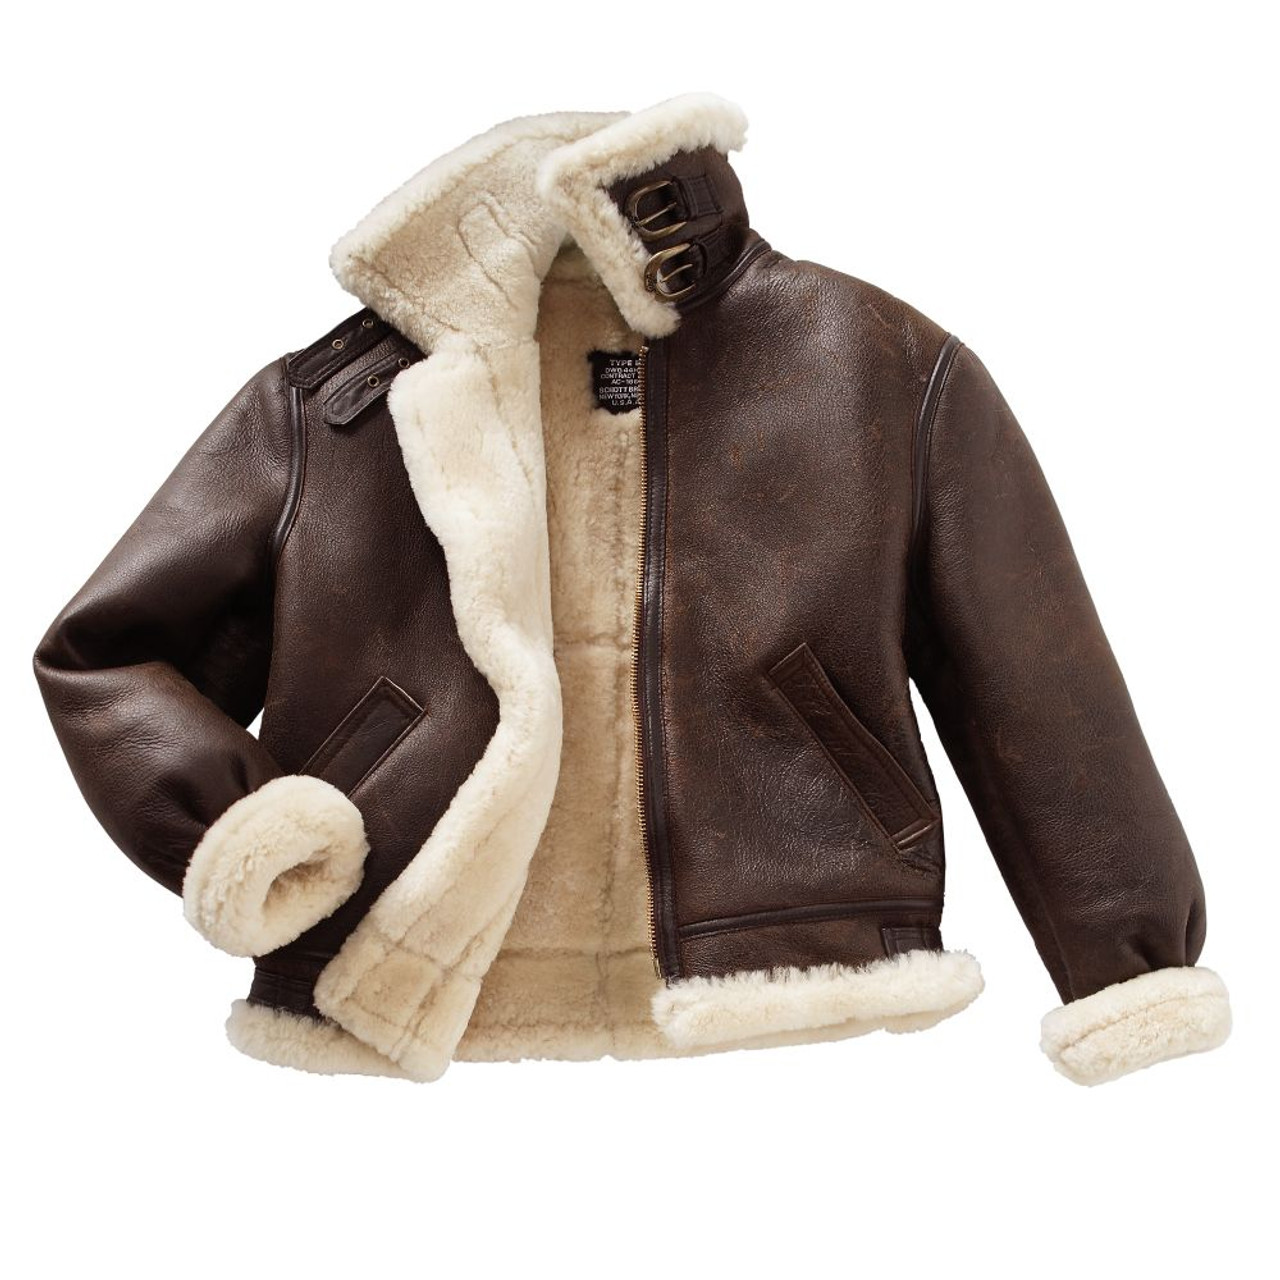 sheepskin b 3 flight jacket. Black Bedroom Furniture Sets. Home Design Ideas